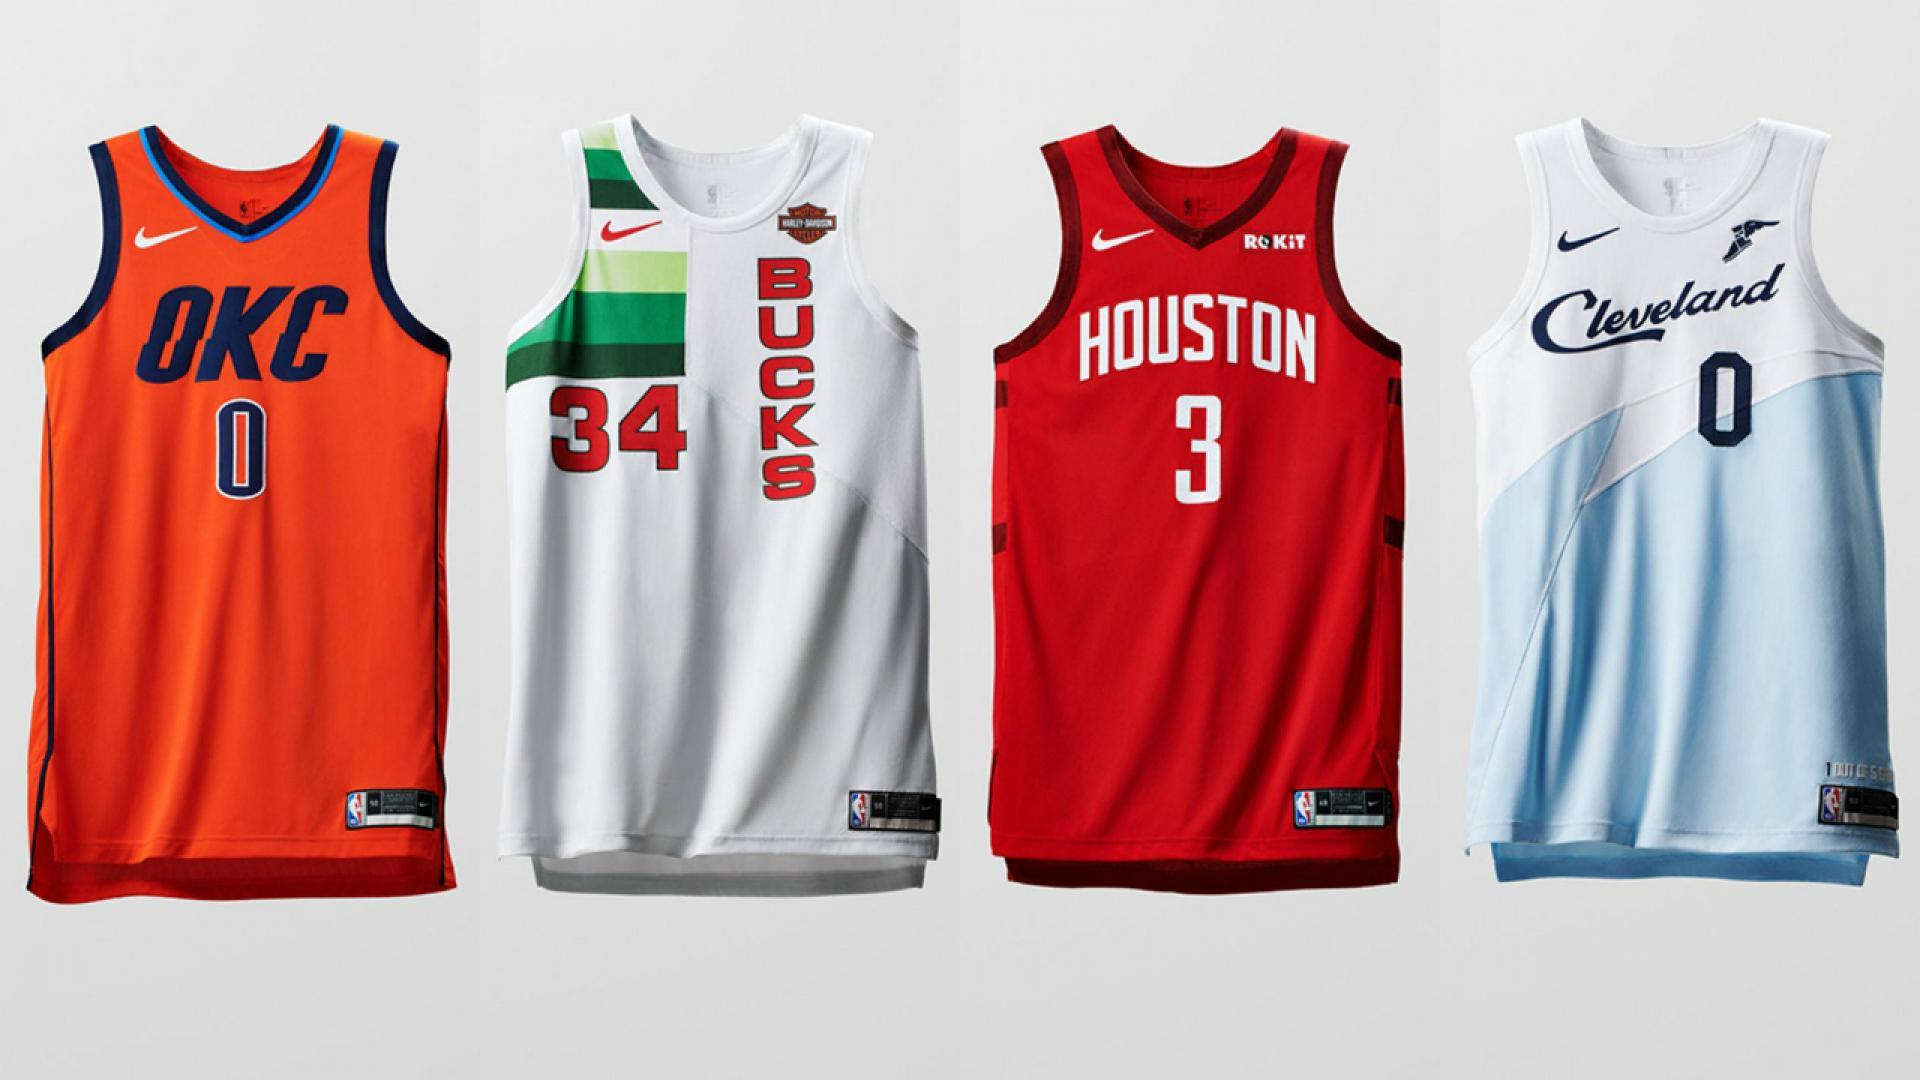 d2cc3c874 Here s a quick look at the 16 uniforms set to hit the court in the coming  weeks.